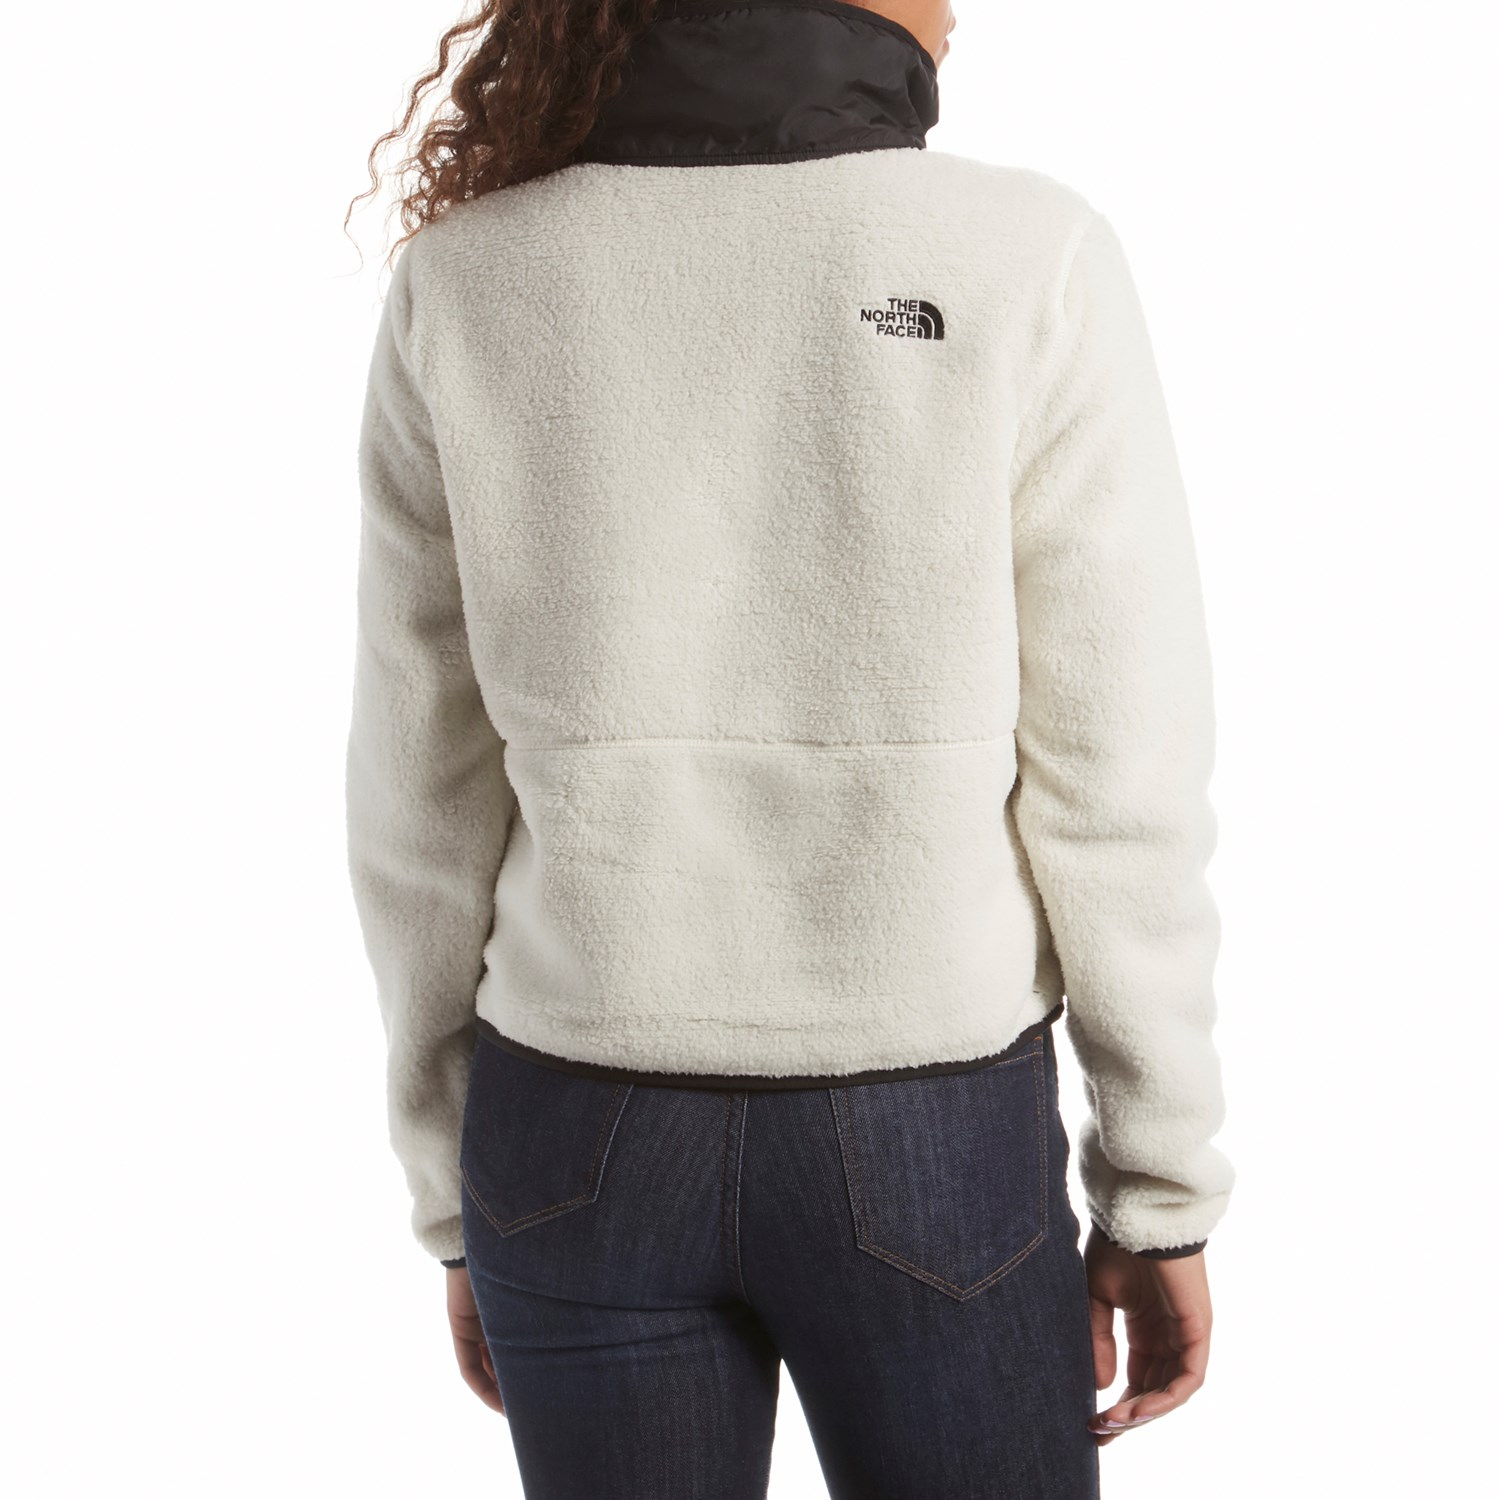 The North Face Dunraven Sherpa Crop Jacket Women S Evo